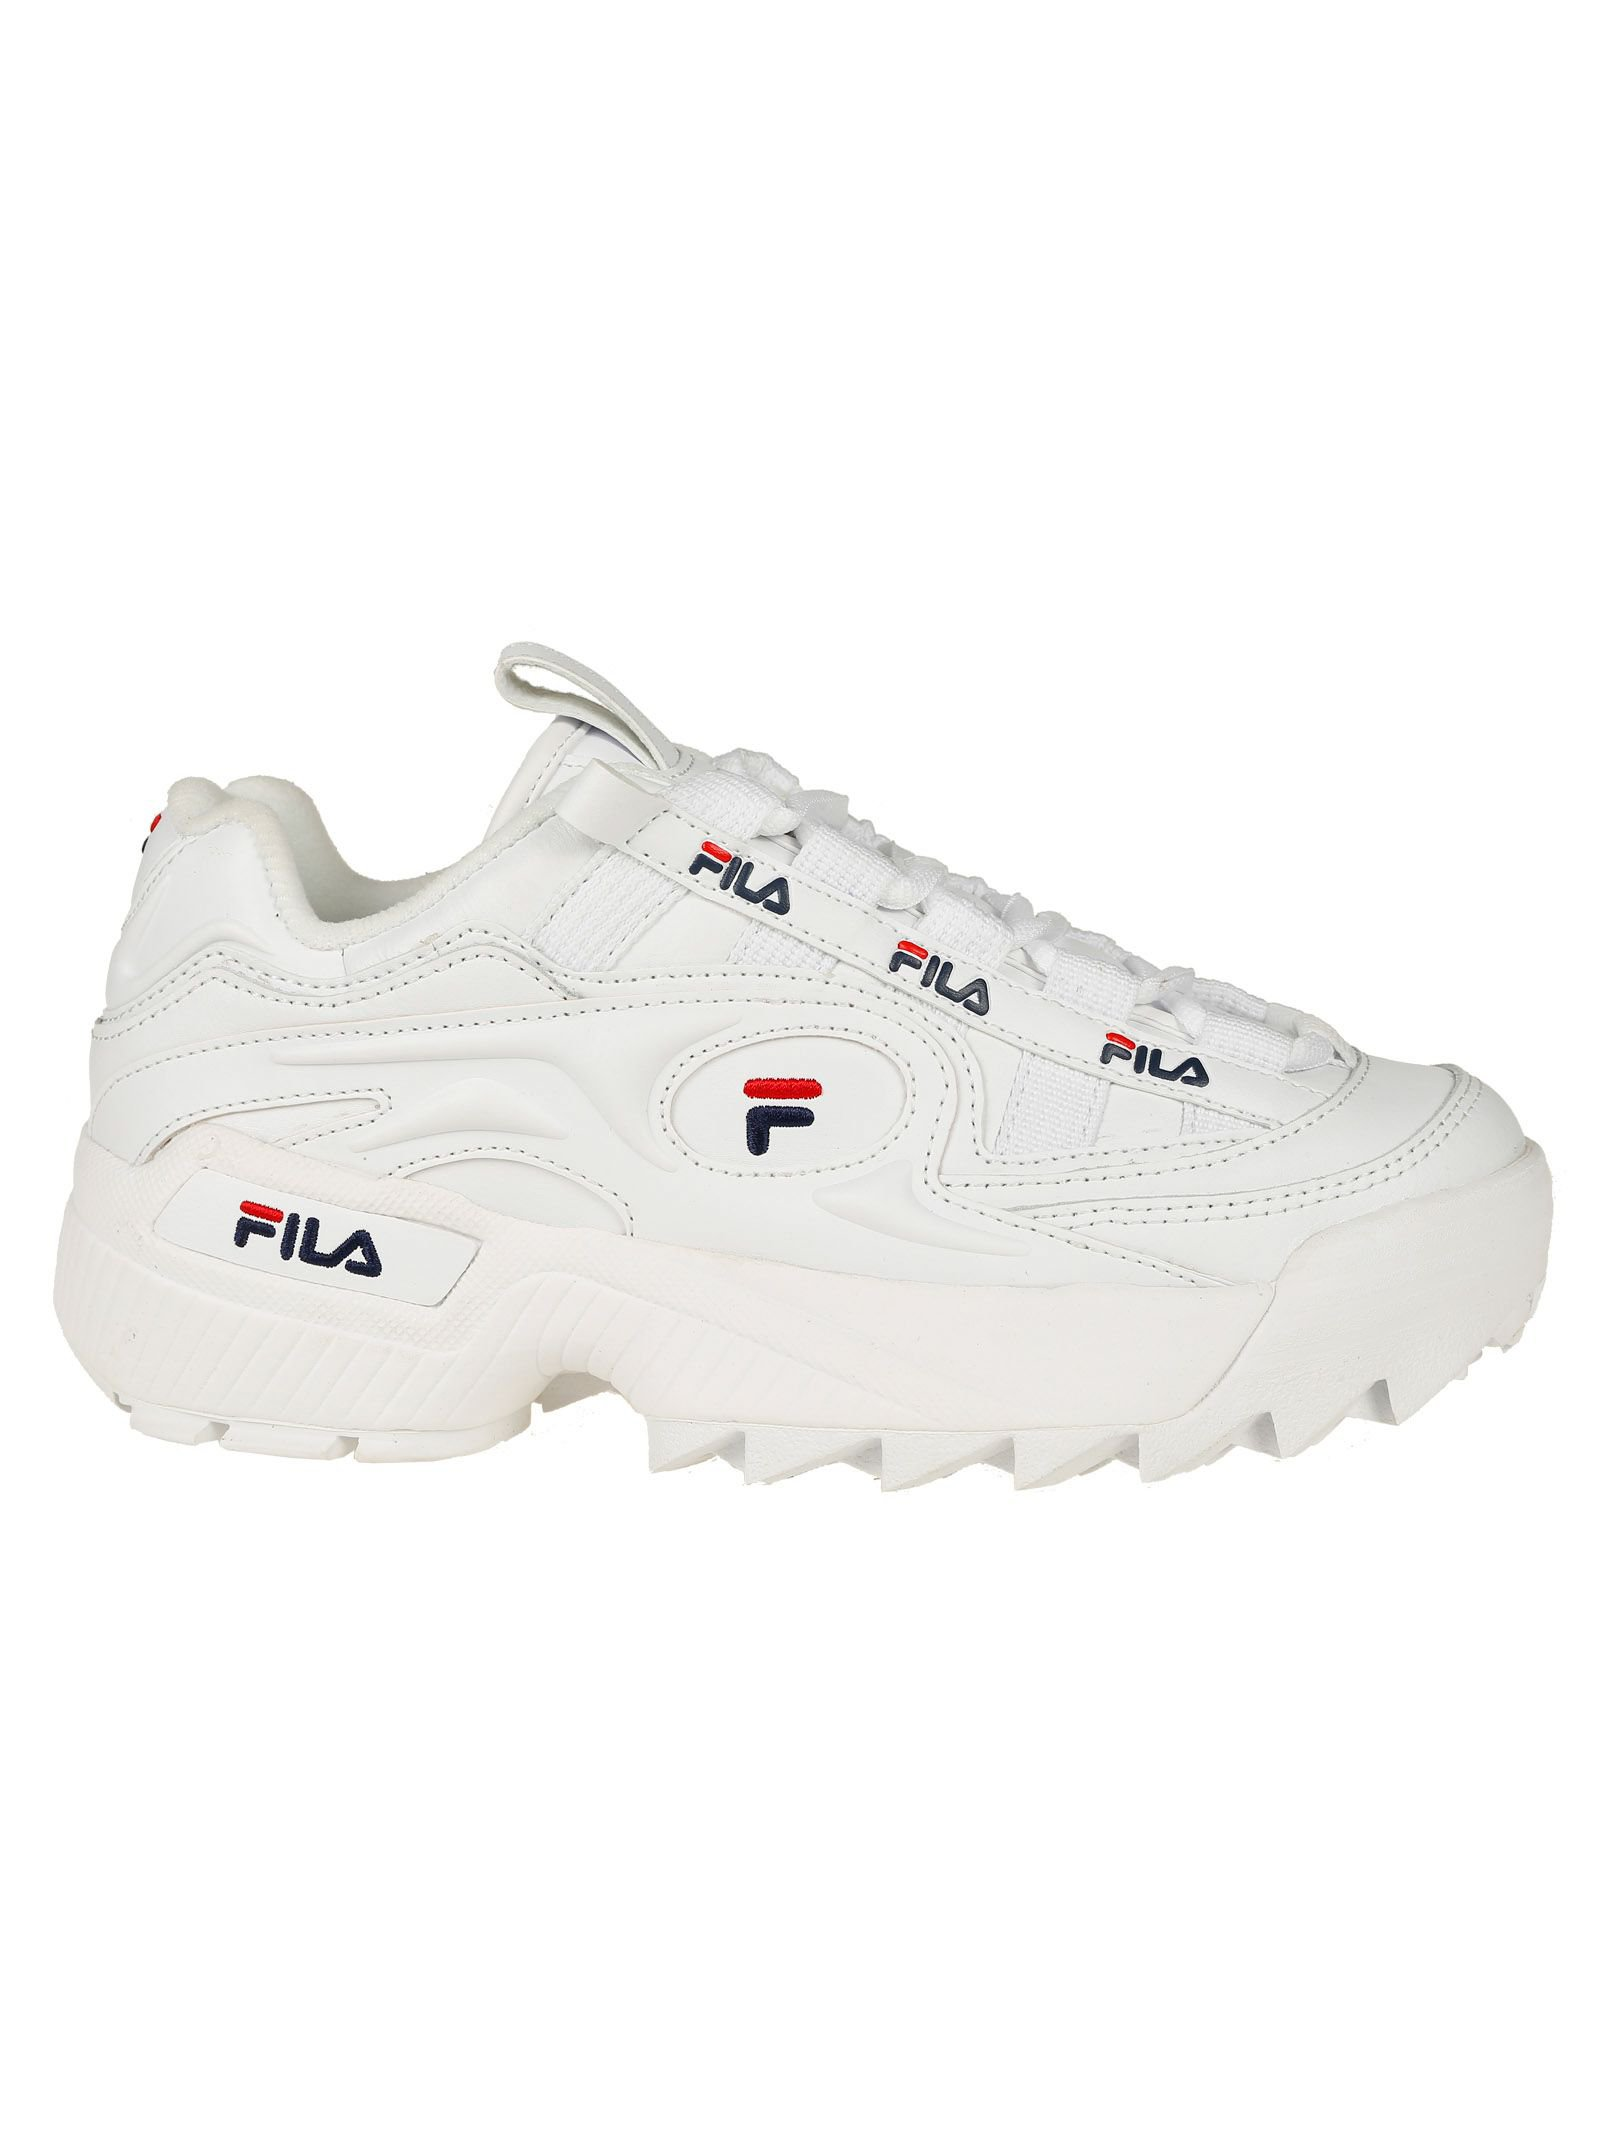 Fila Ridged Sole Sneakers